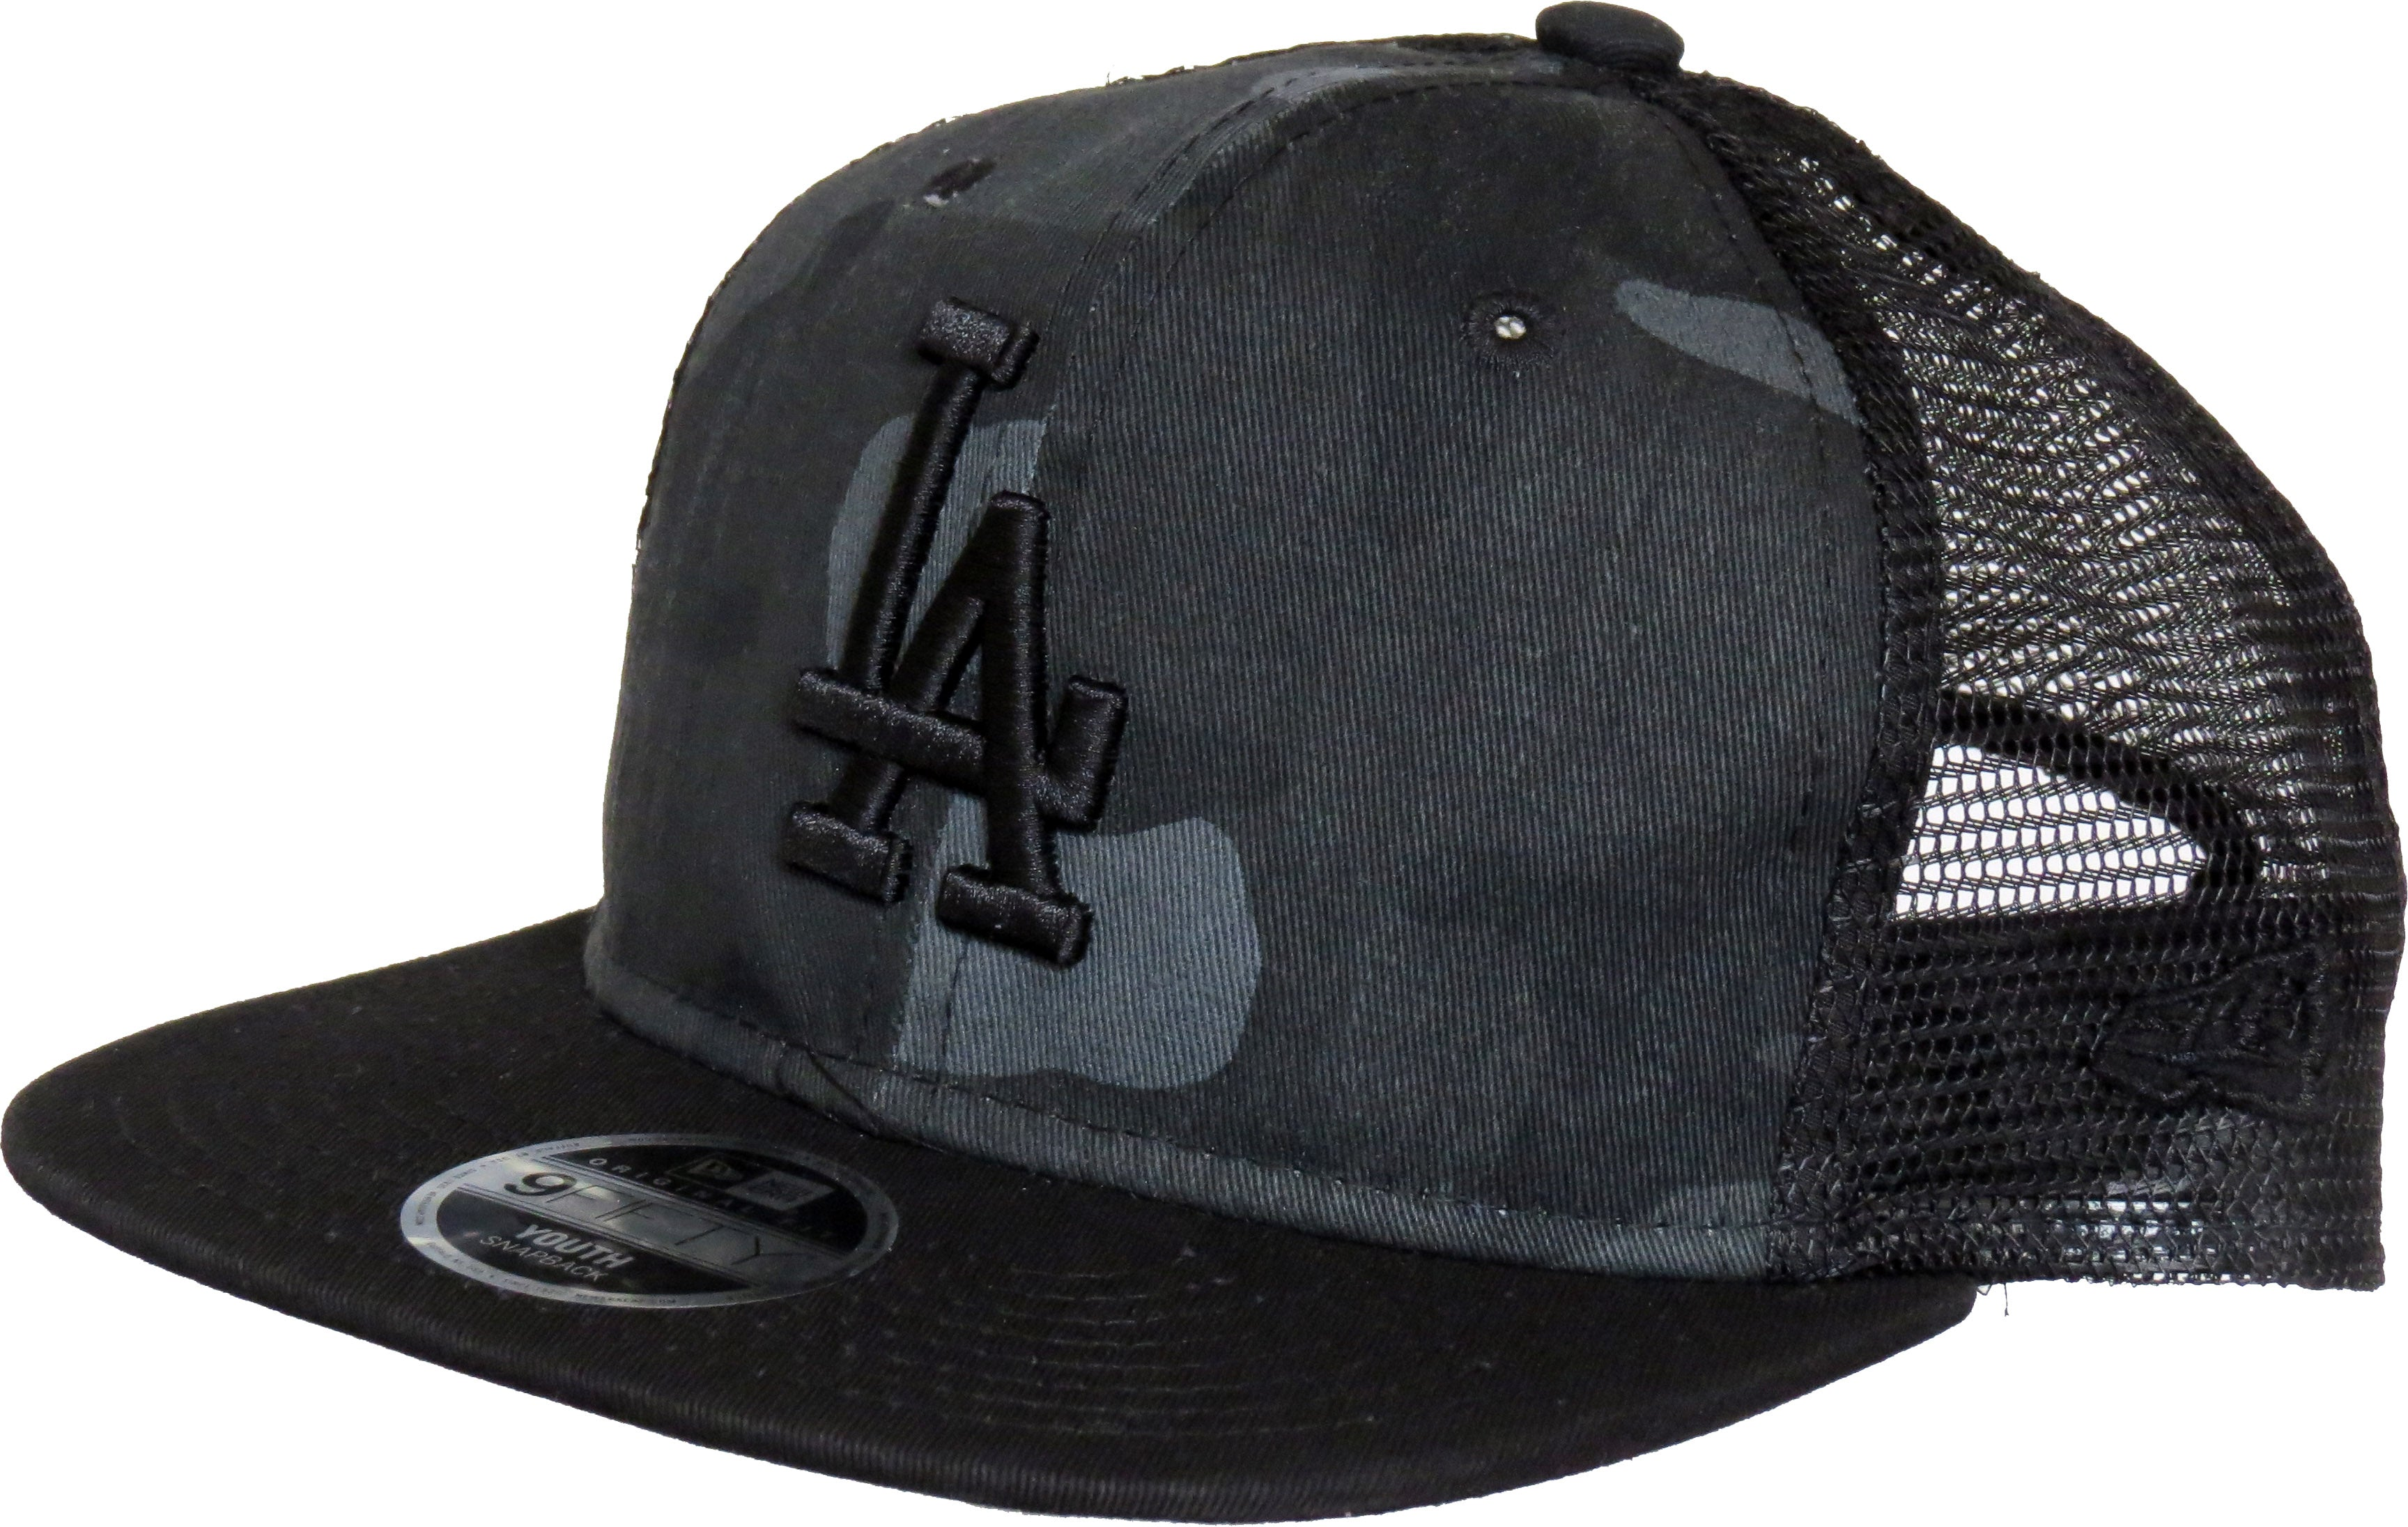 LA Dodgers New Era 950 Kids Washed Camo Snapback Cap (Age 5 - 10 years ... 8b7171bf847